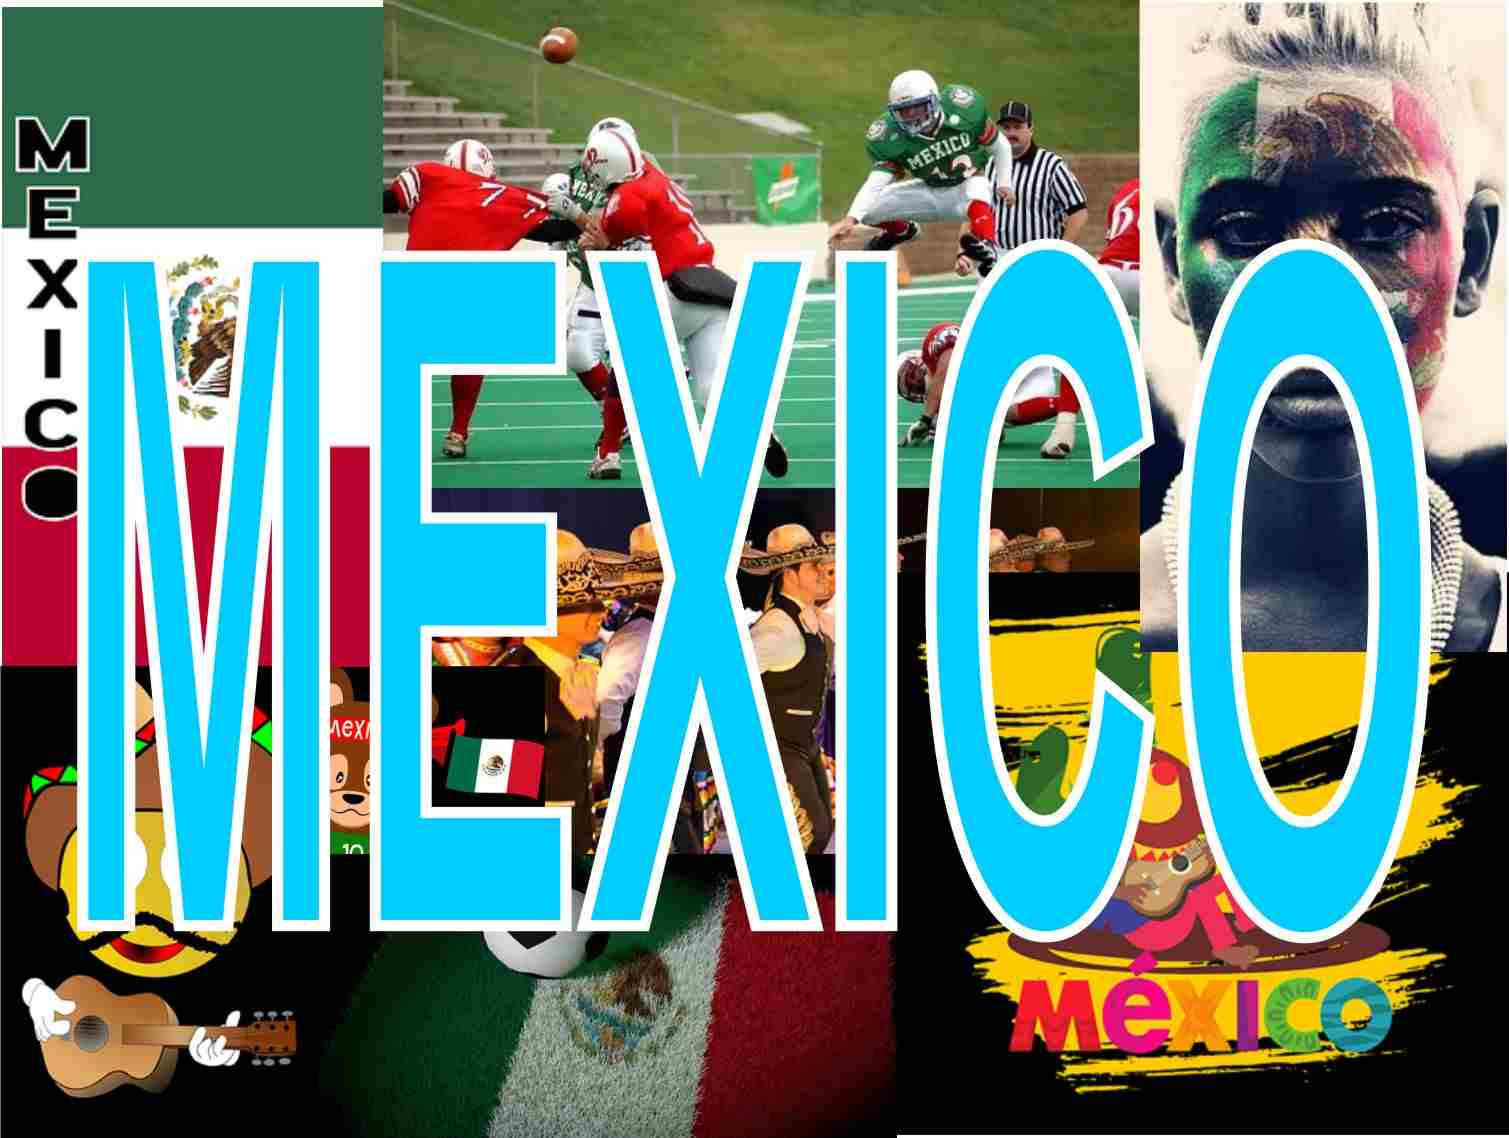 Mexico: what to see in different cities, what are they